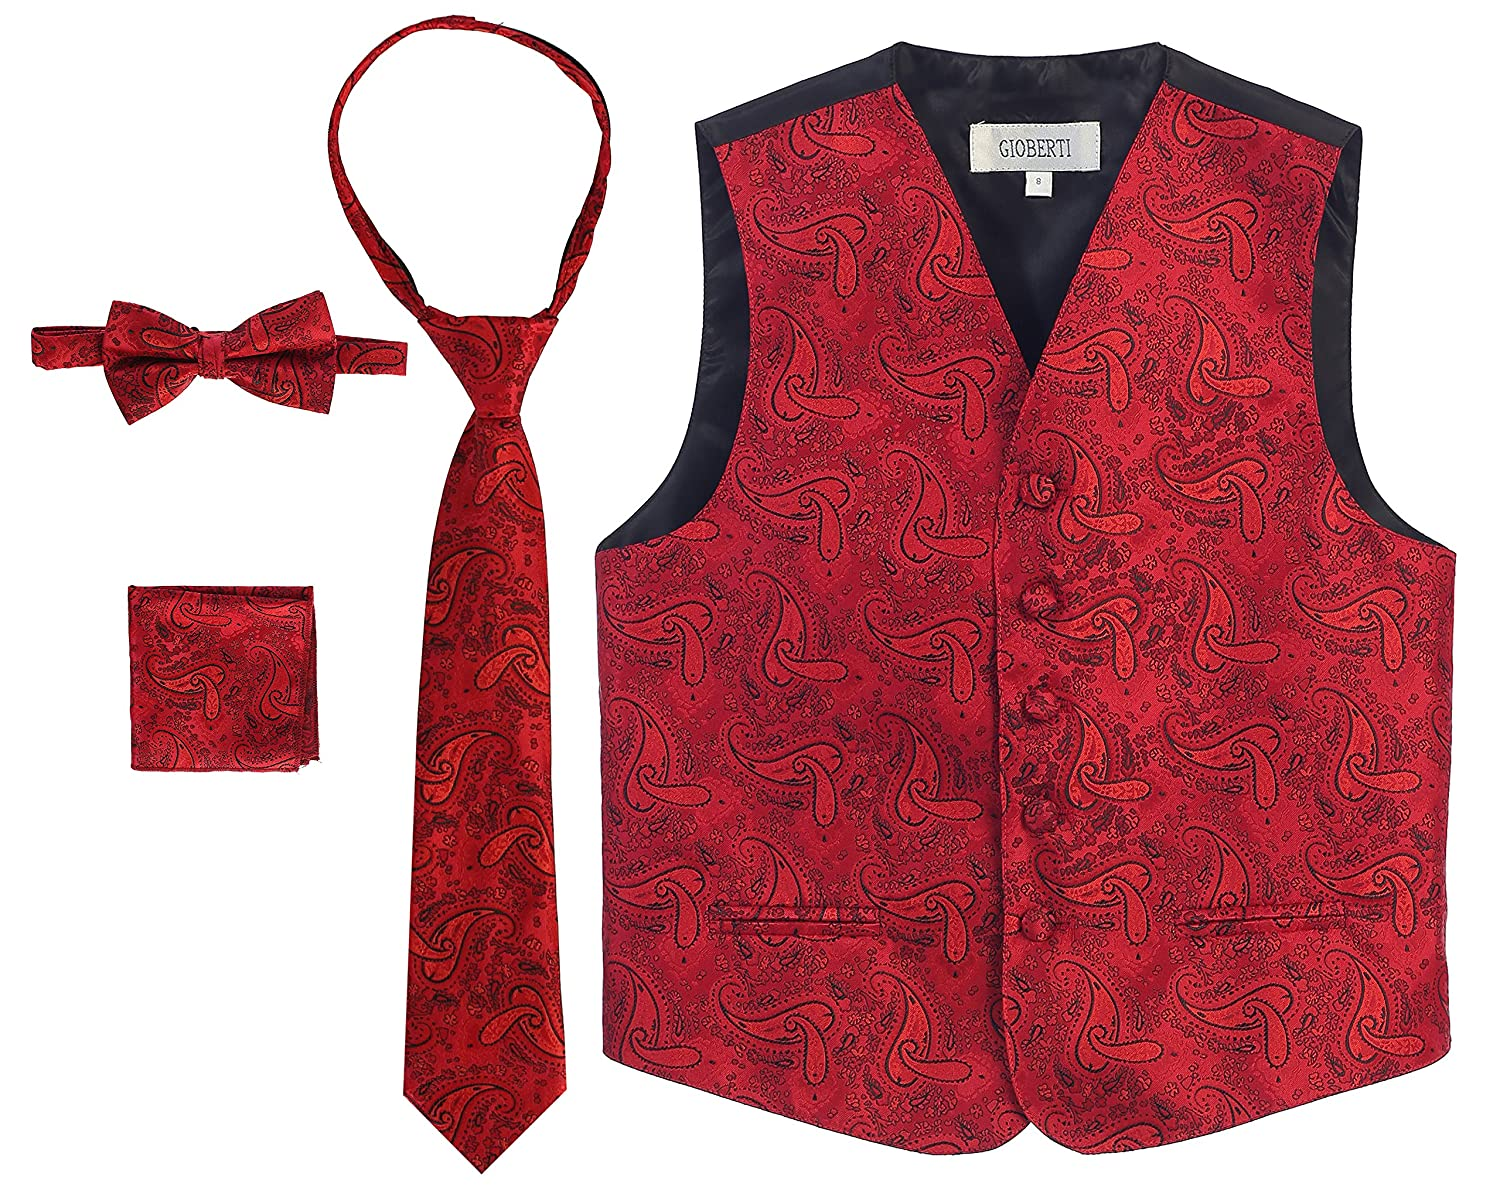 Gioberti Boy's 4 Piece Formal Paisley Tuxedo Vest, Bowtie, Tie, Pocket Square Set VSK-86P